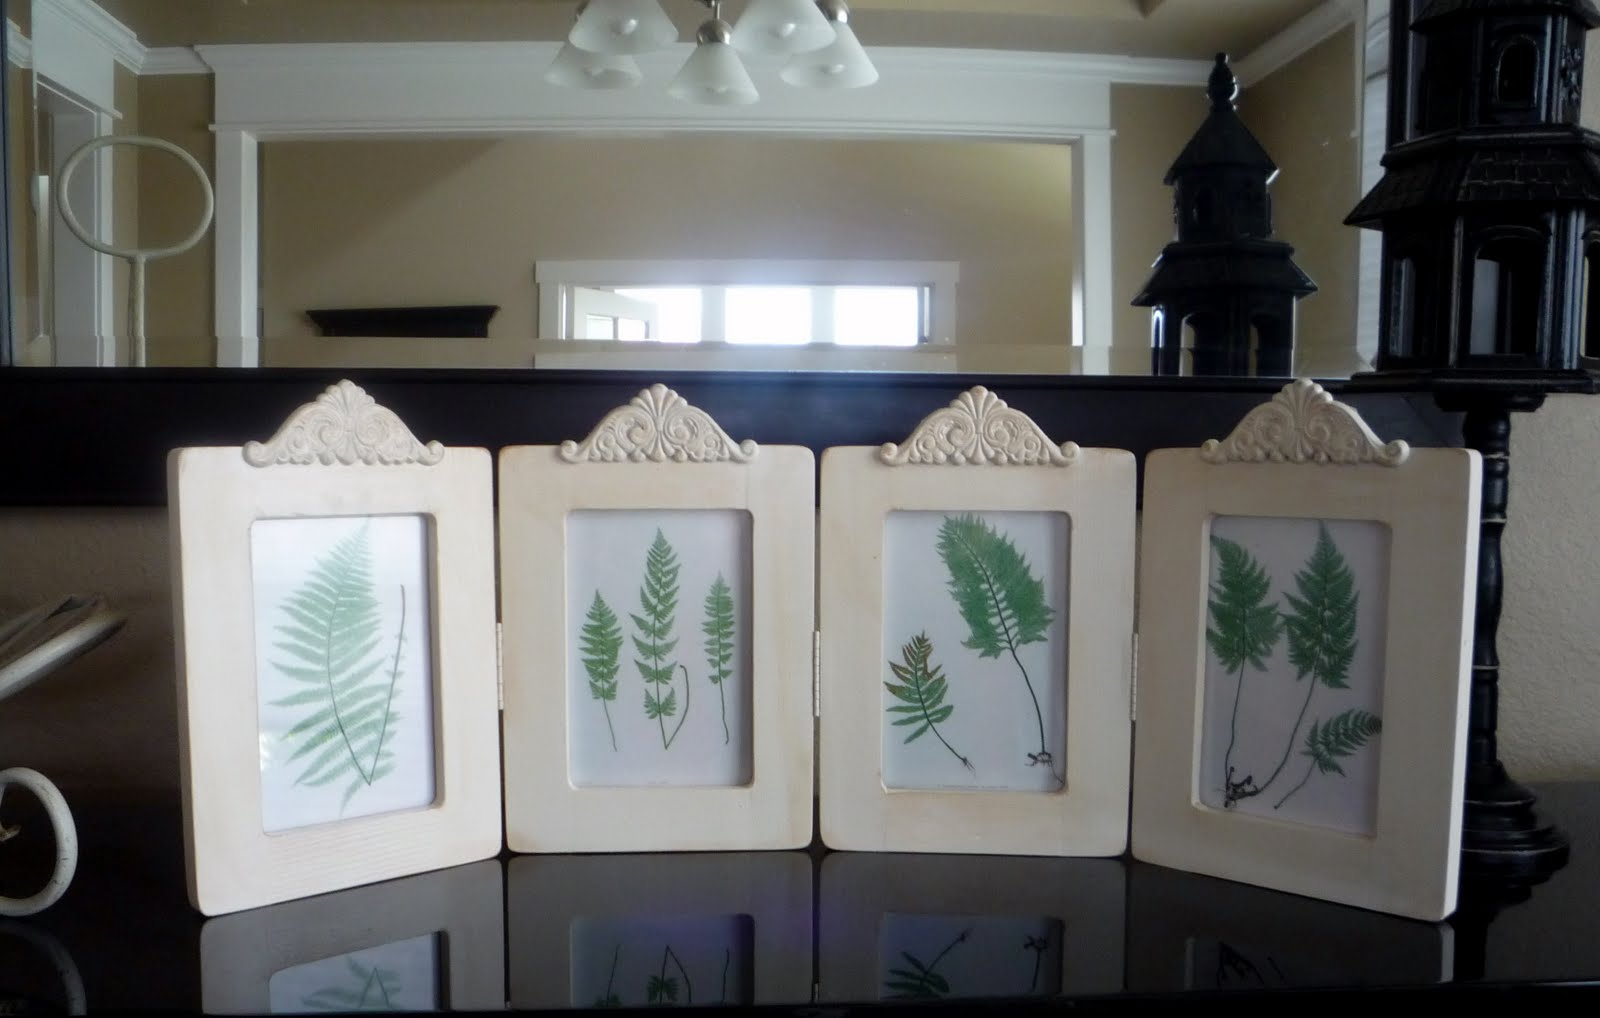 592c9f50b8b We used Michaels cheapo unfinished wood frames and inserted the glass from  another cheap Michael s photo frame. Hinges and decorative wood pieces came  from ...